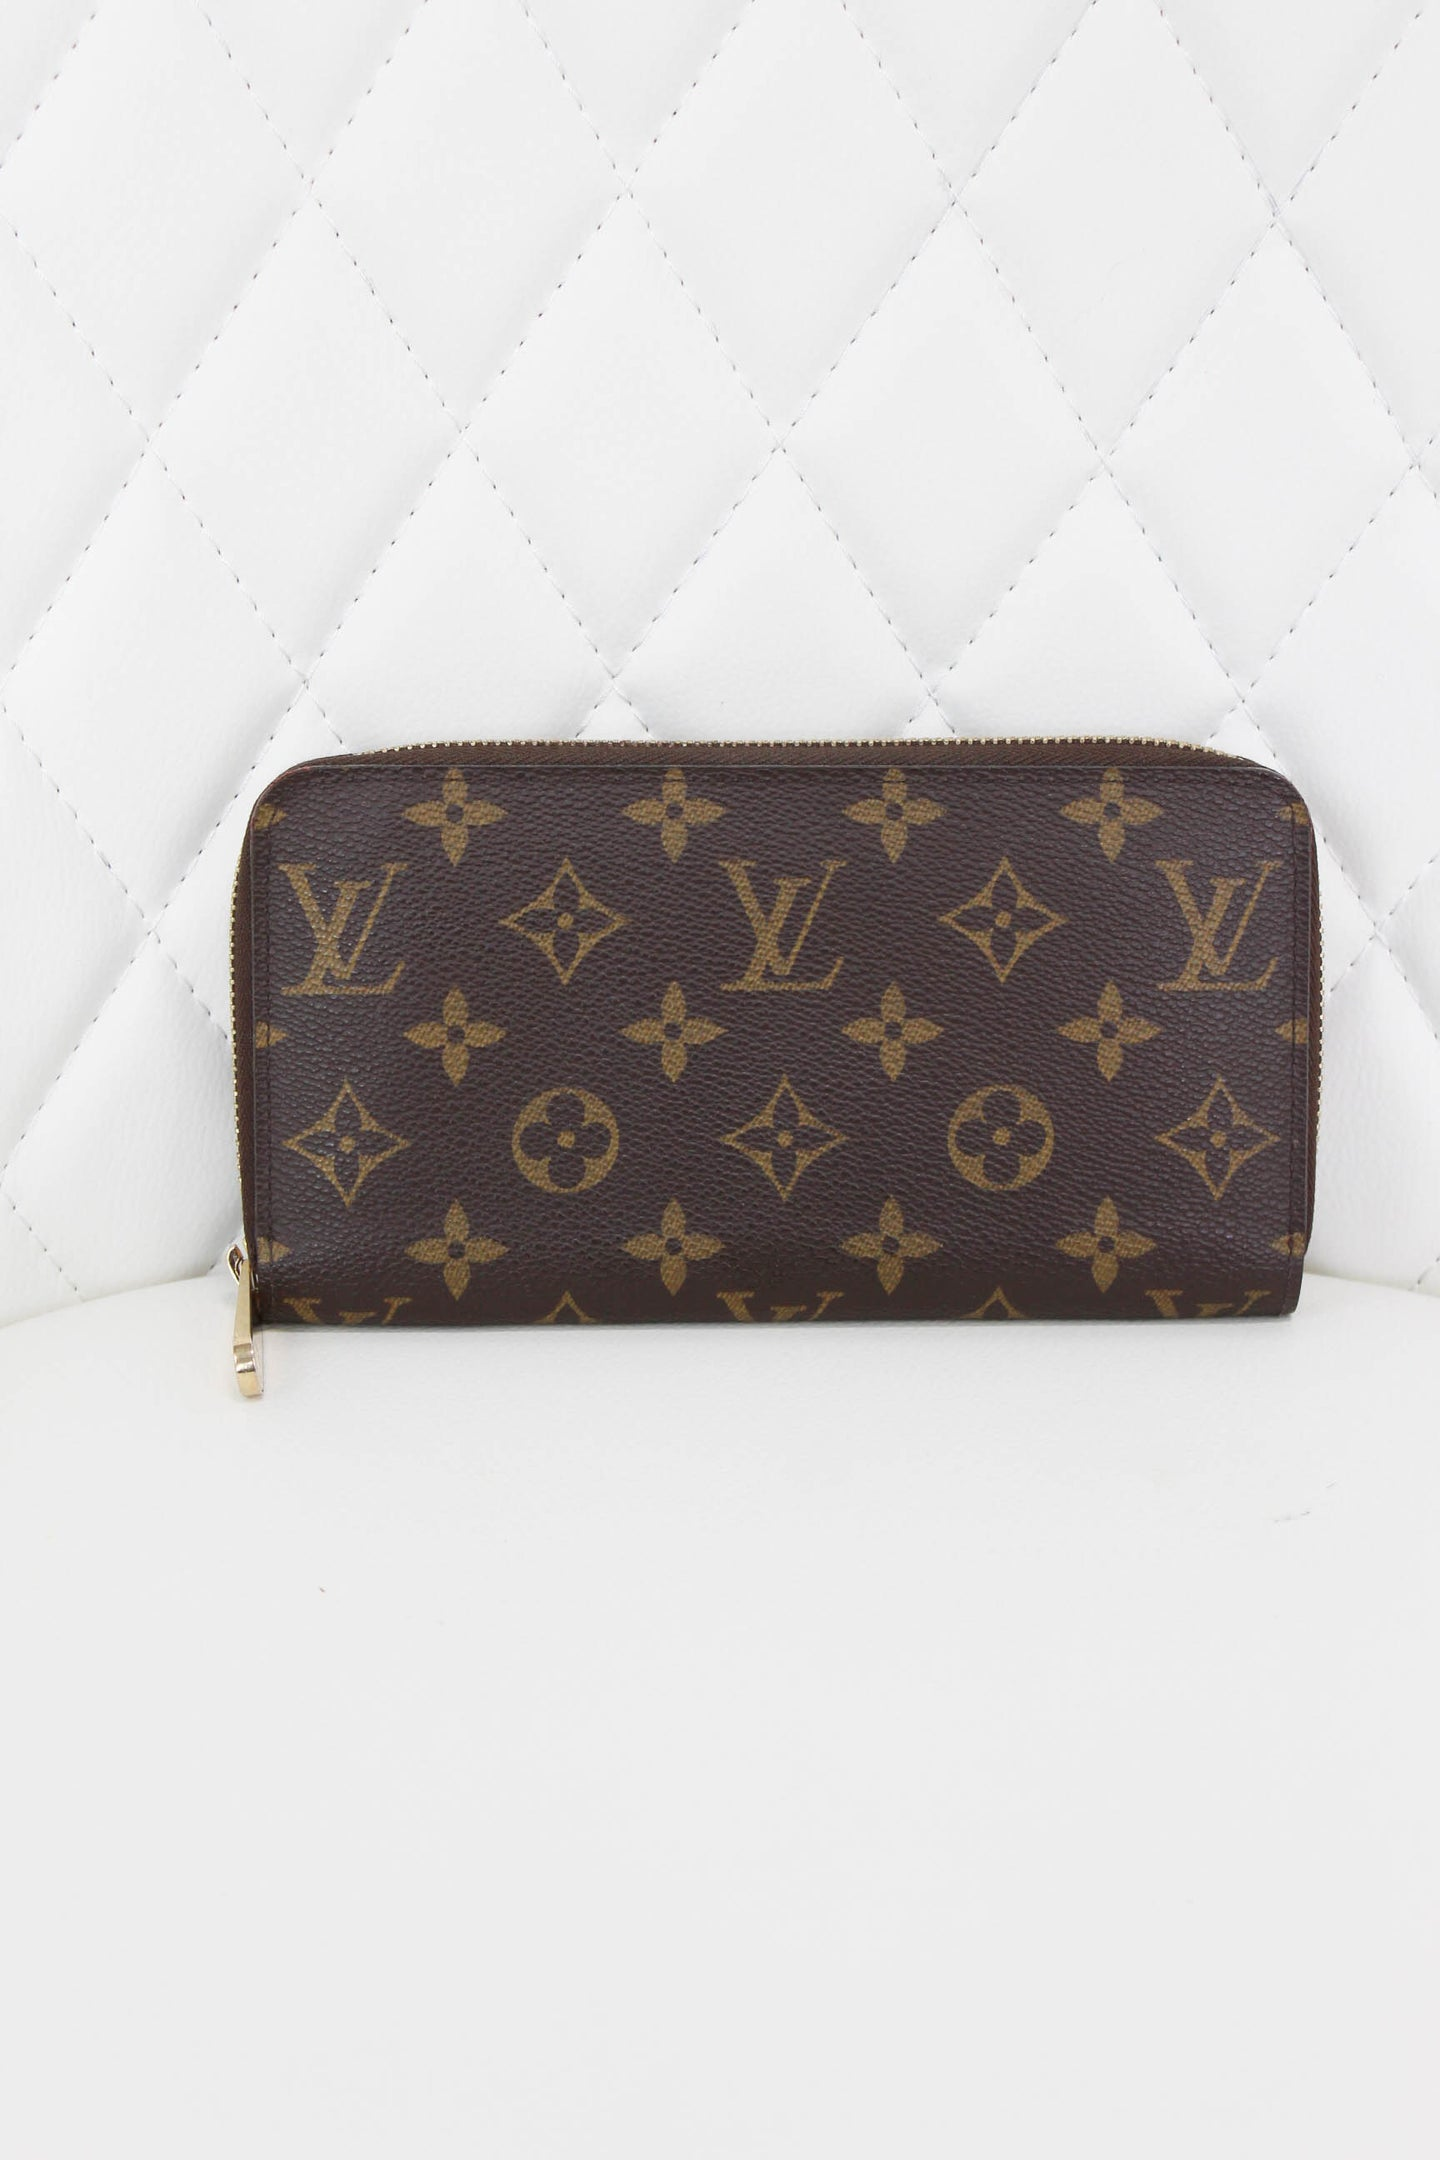 LV Monogram Zippy Wallet